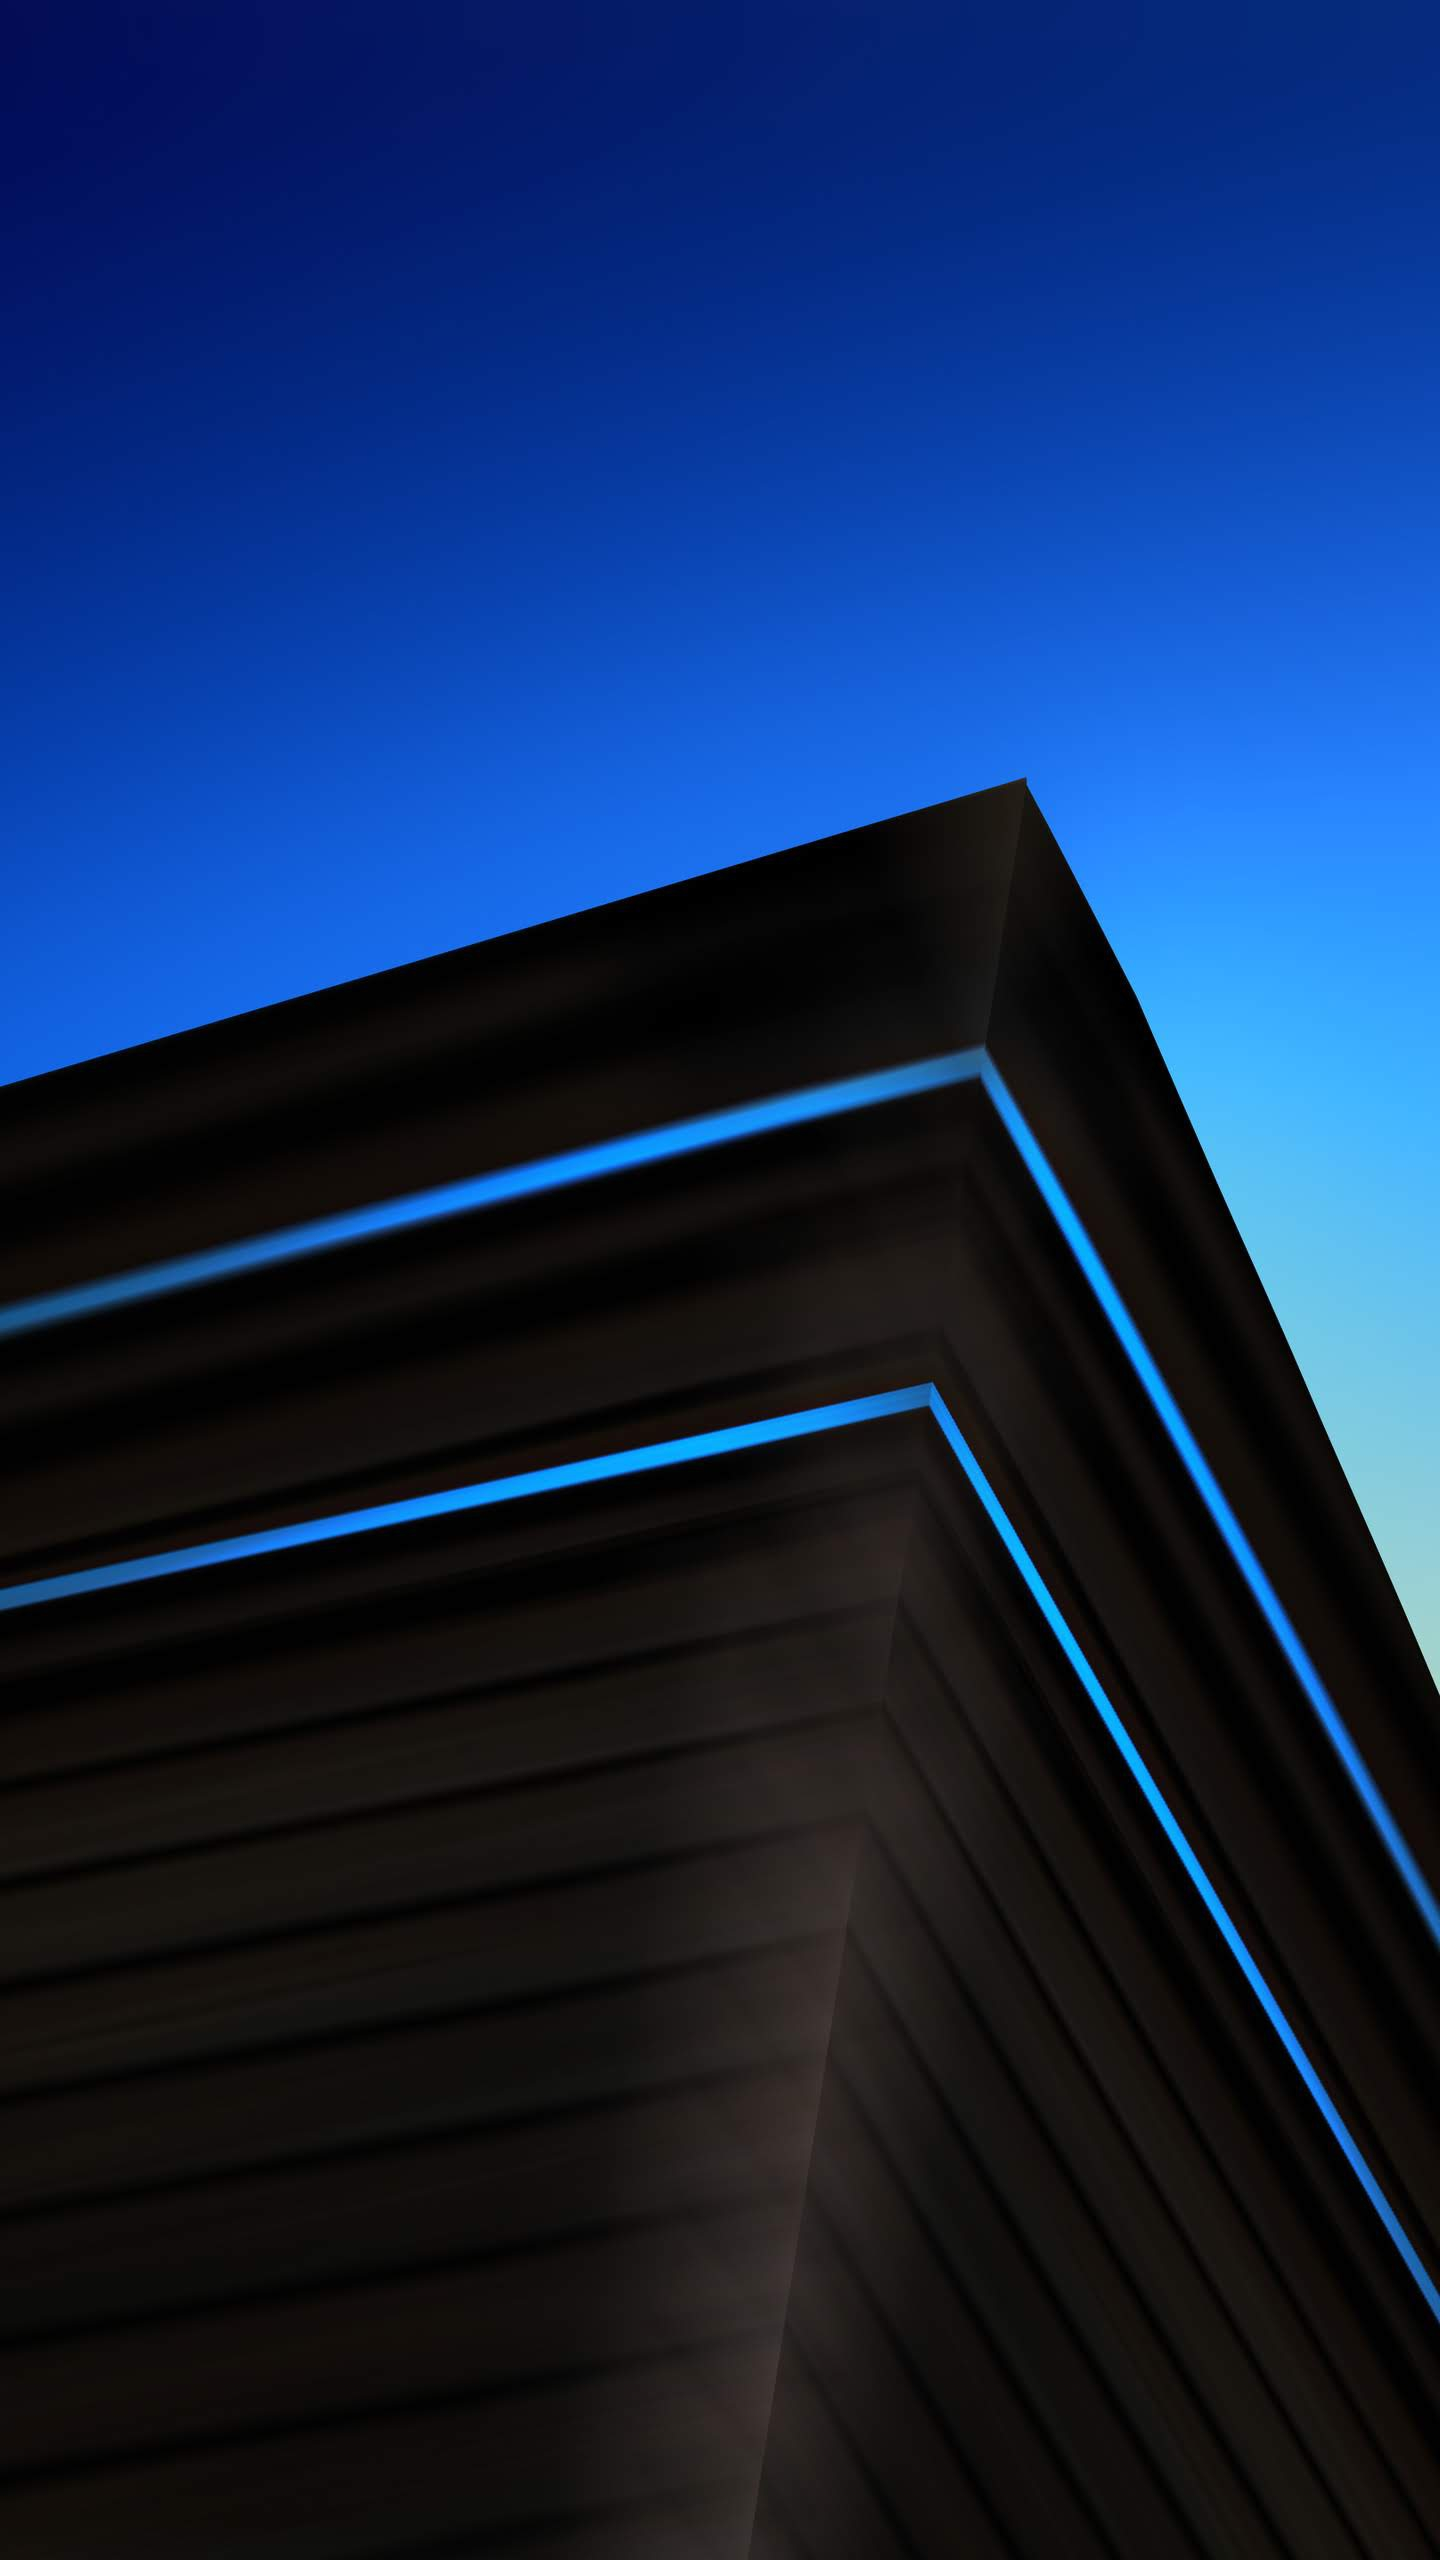 Abstract Architecture iPhone Wallpaper